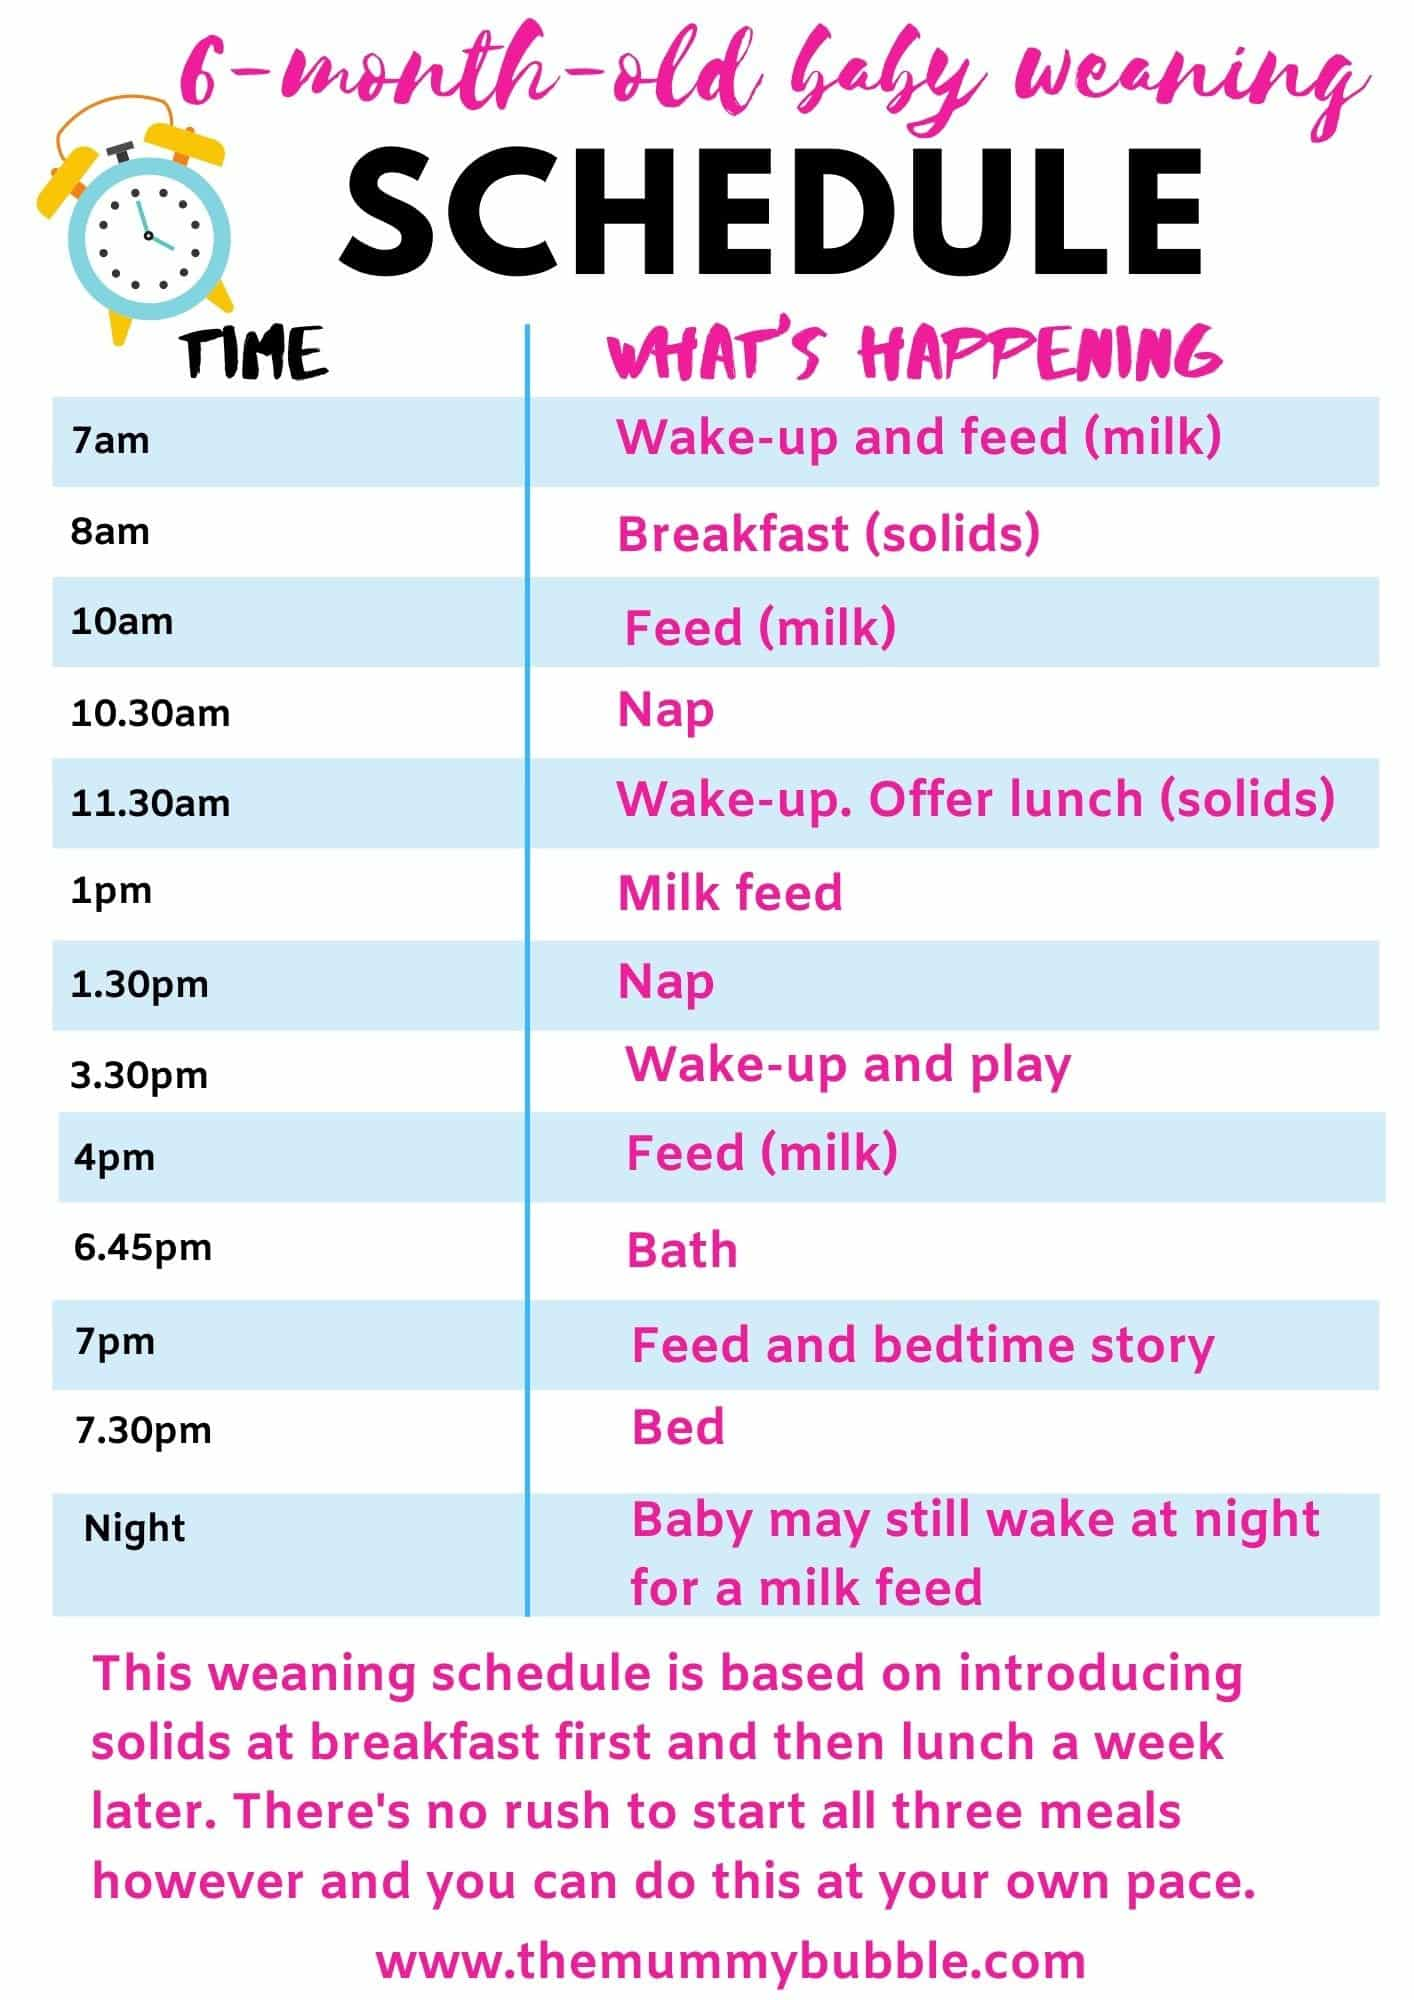 6-month-old baby weaning schedule